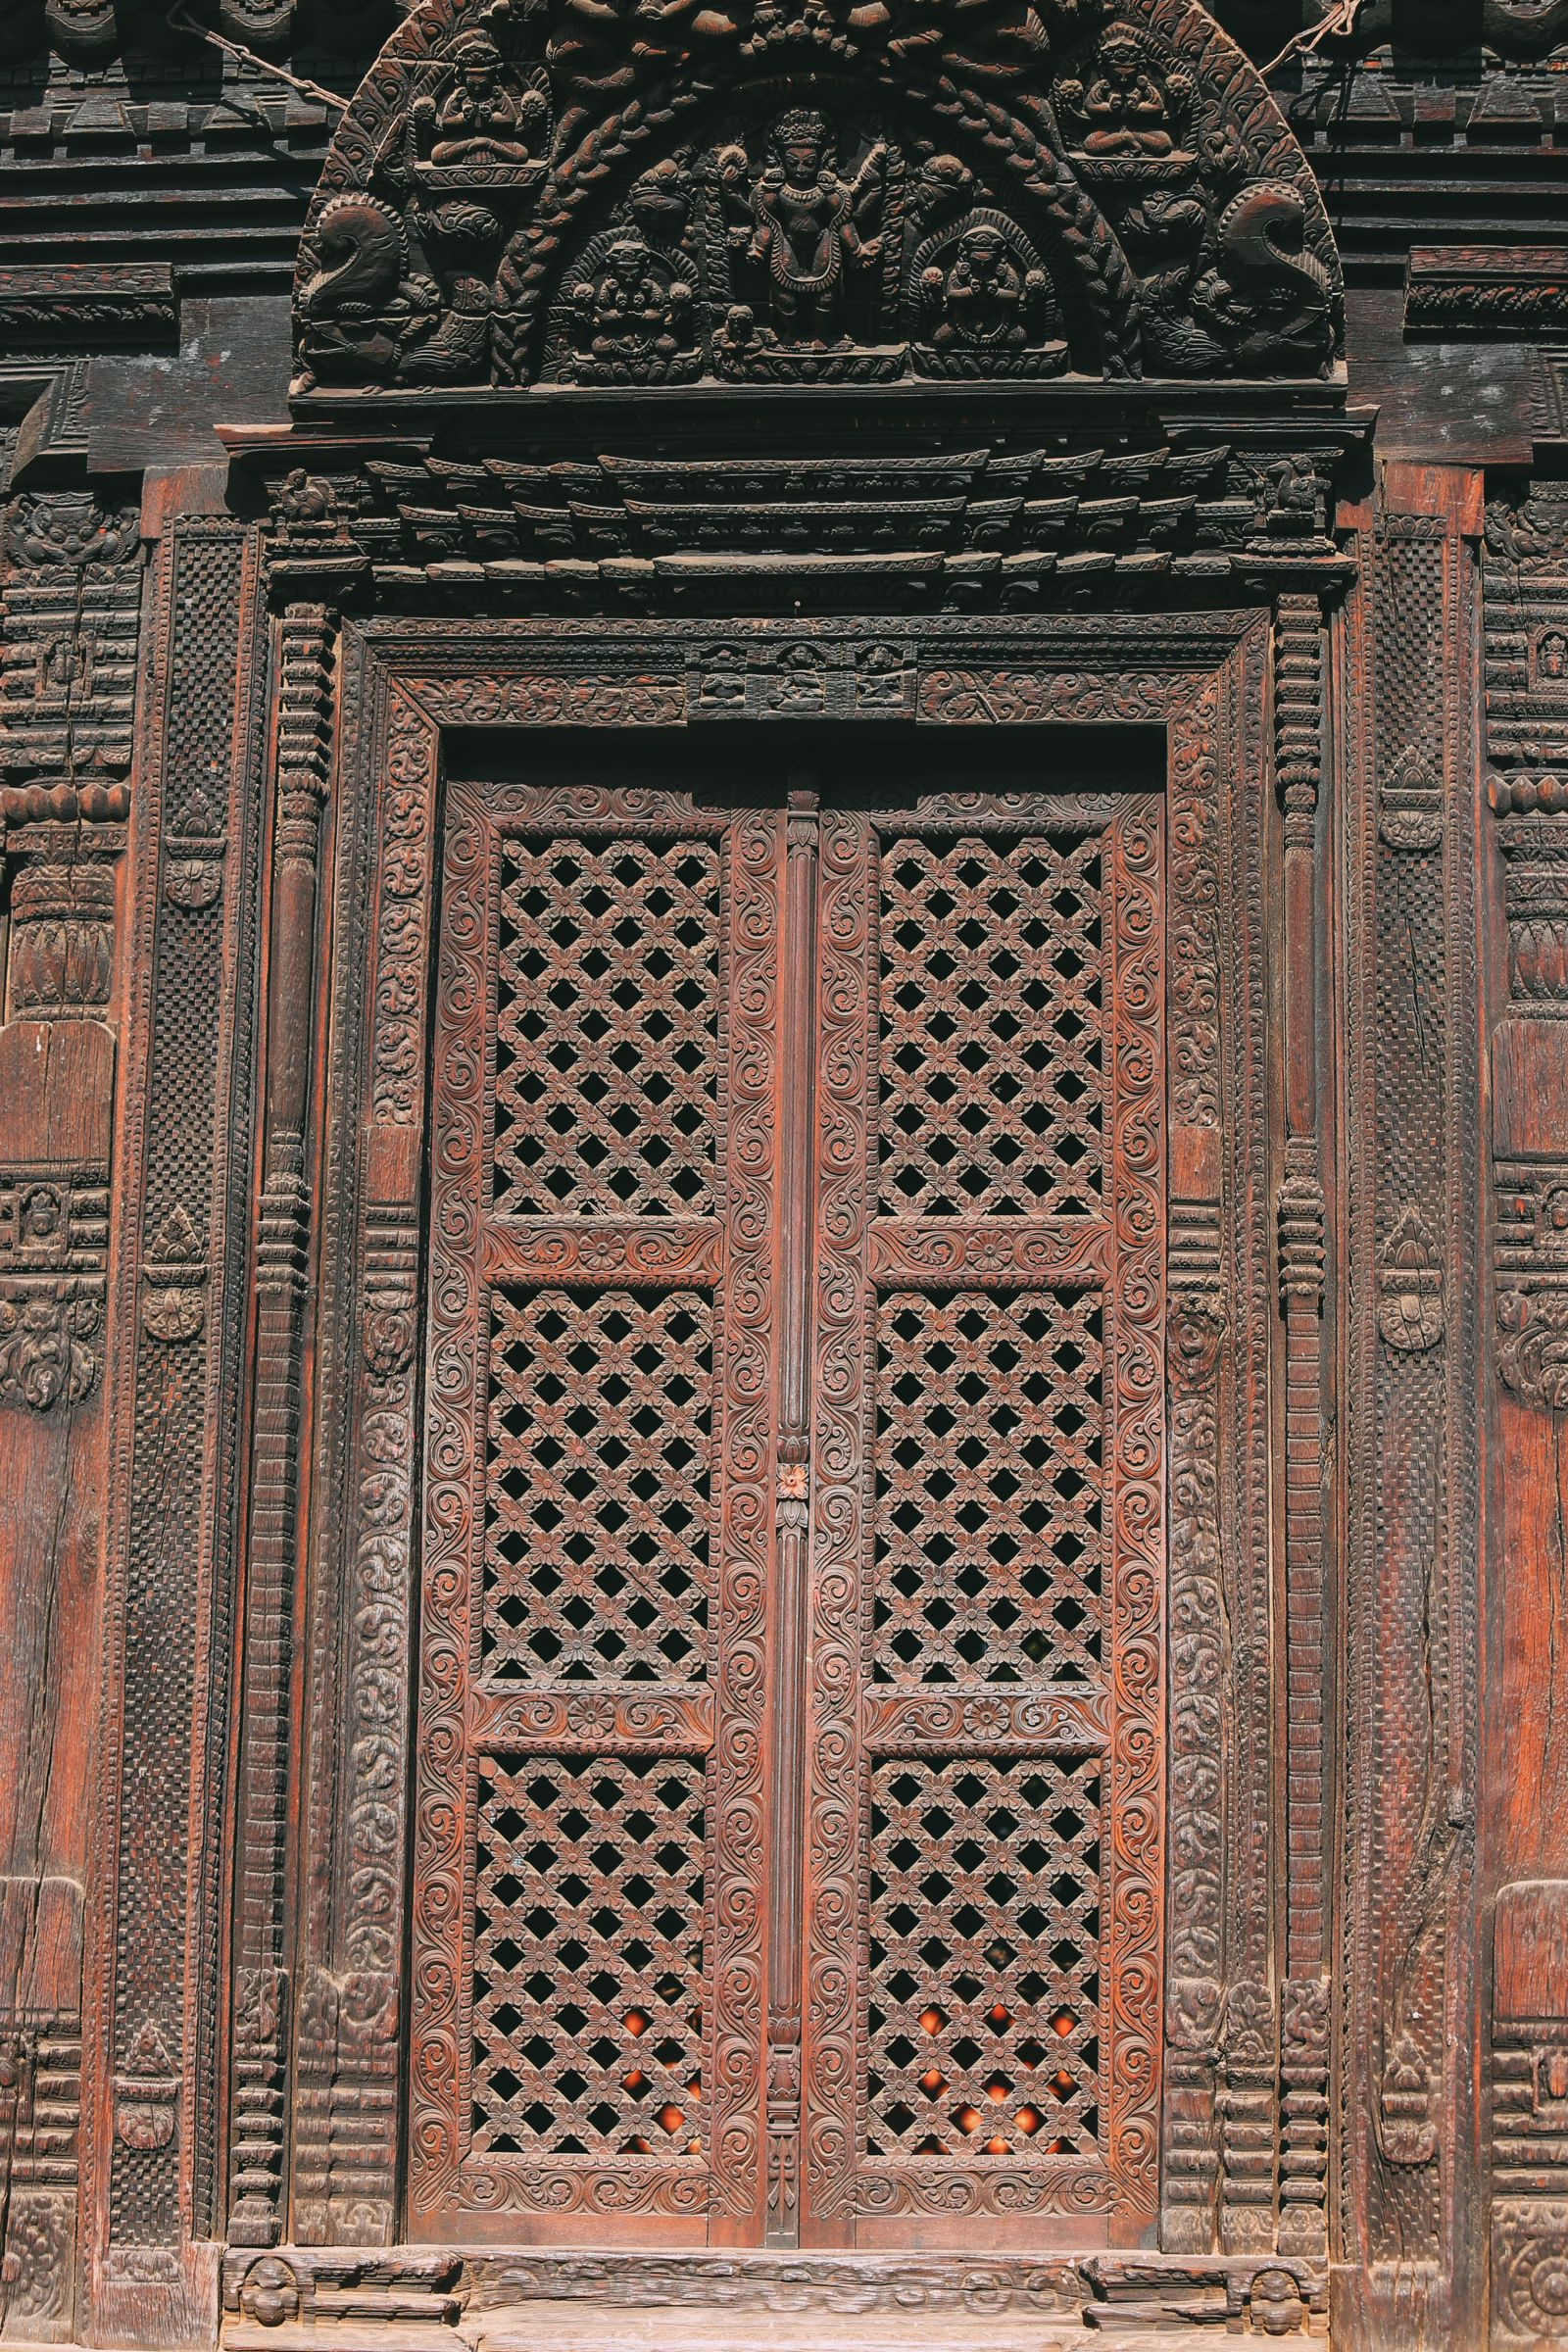 The Amazing UNESCO World Heritage City Of Bhaktapur, Nepal (33)